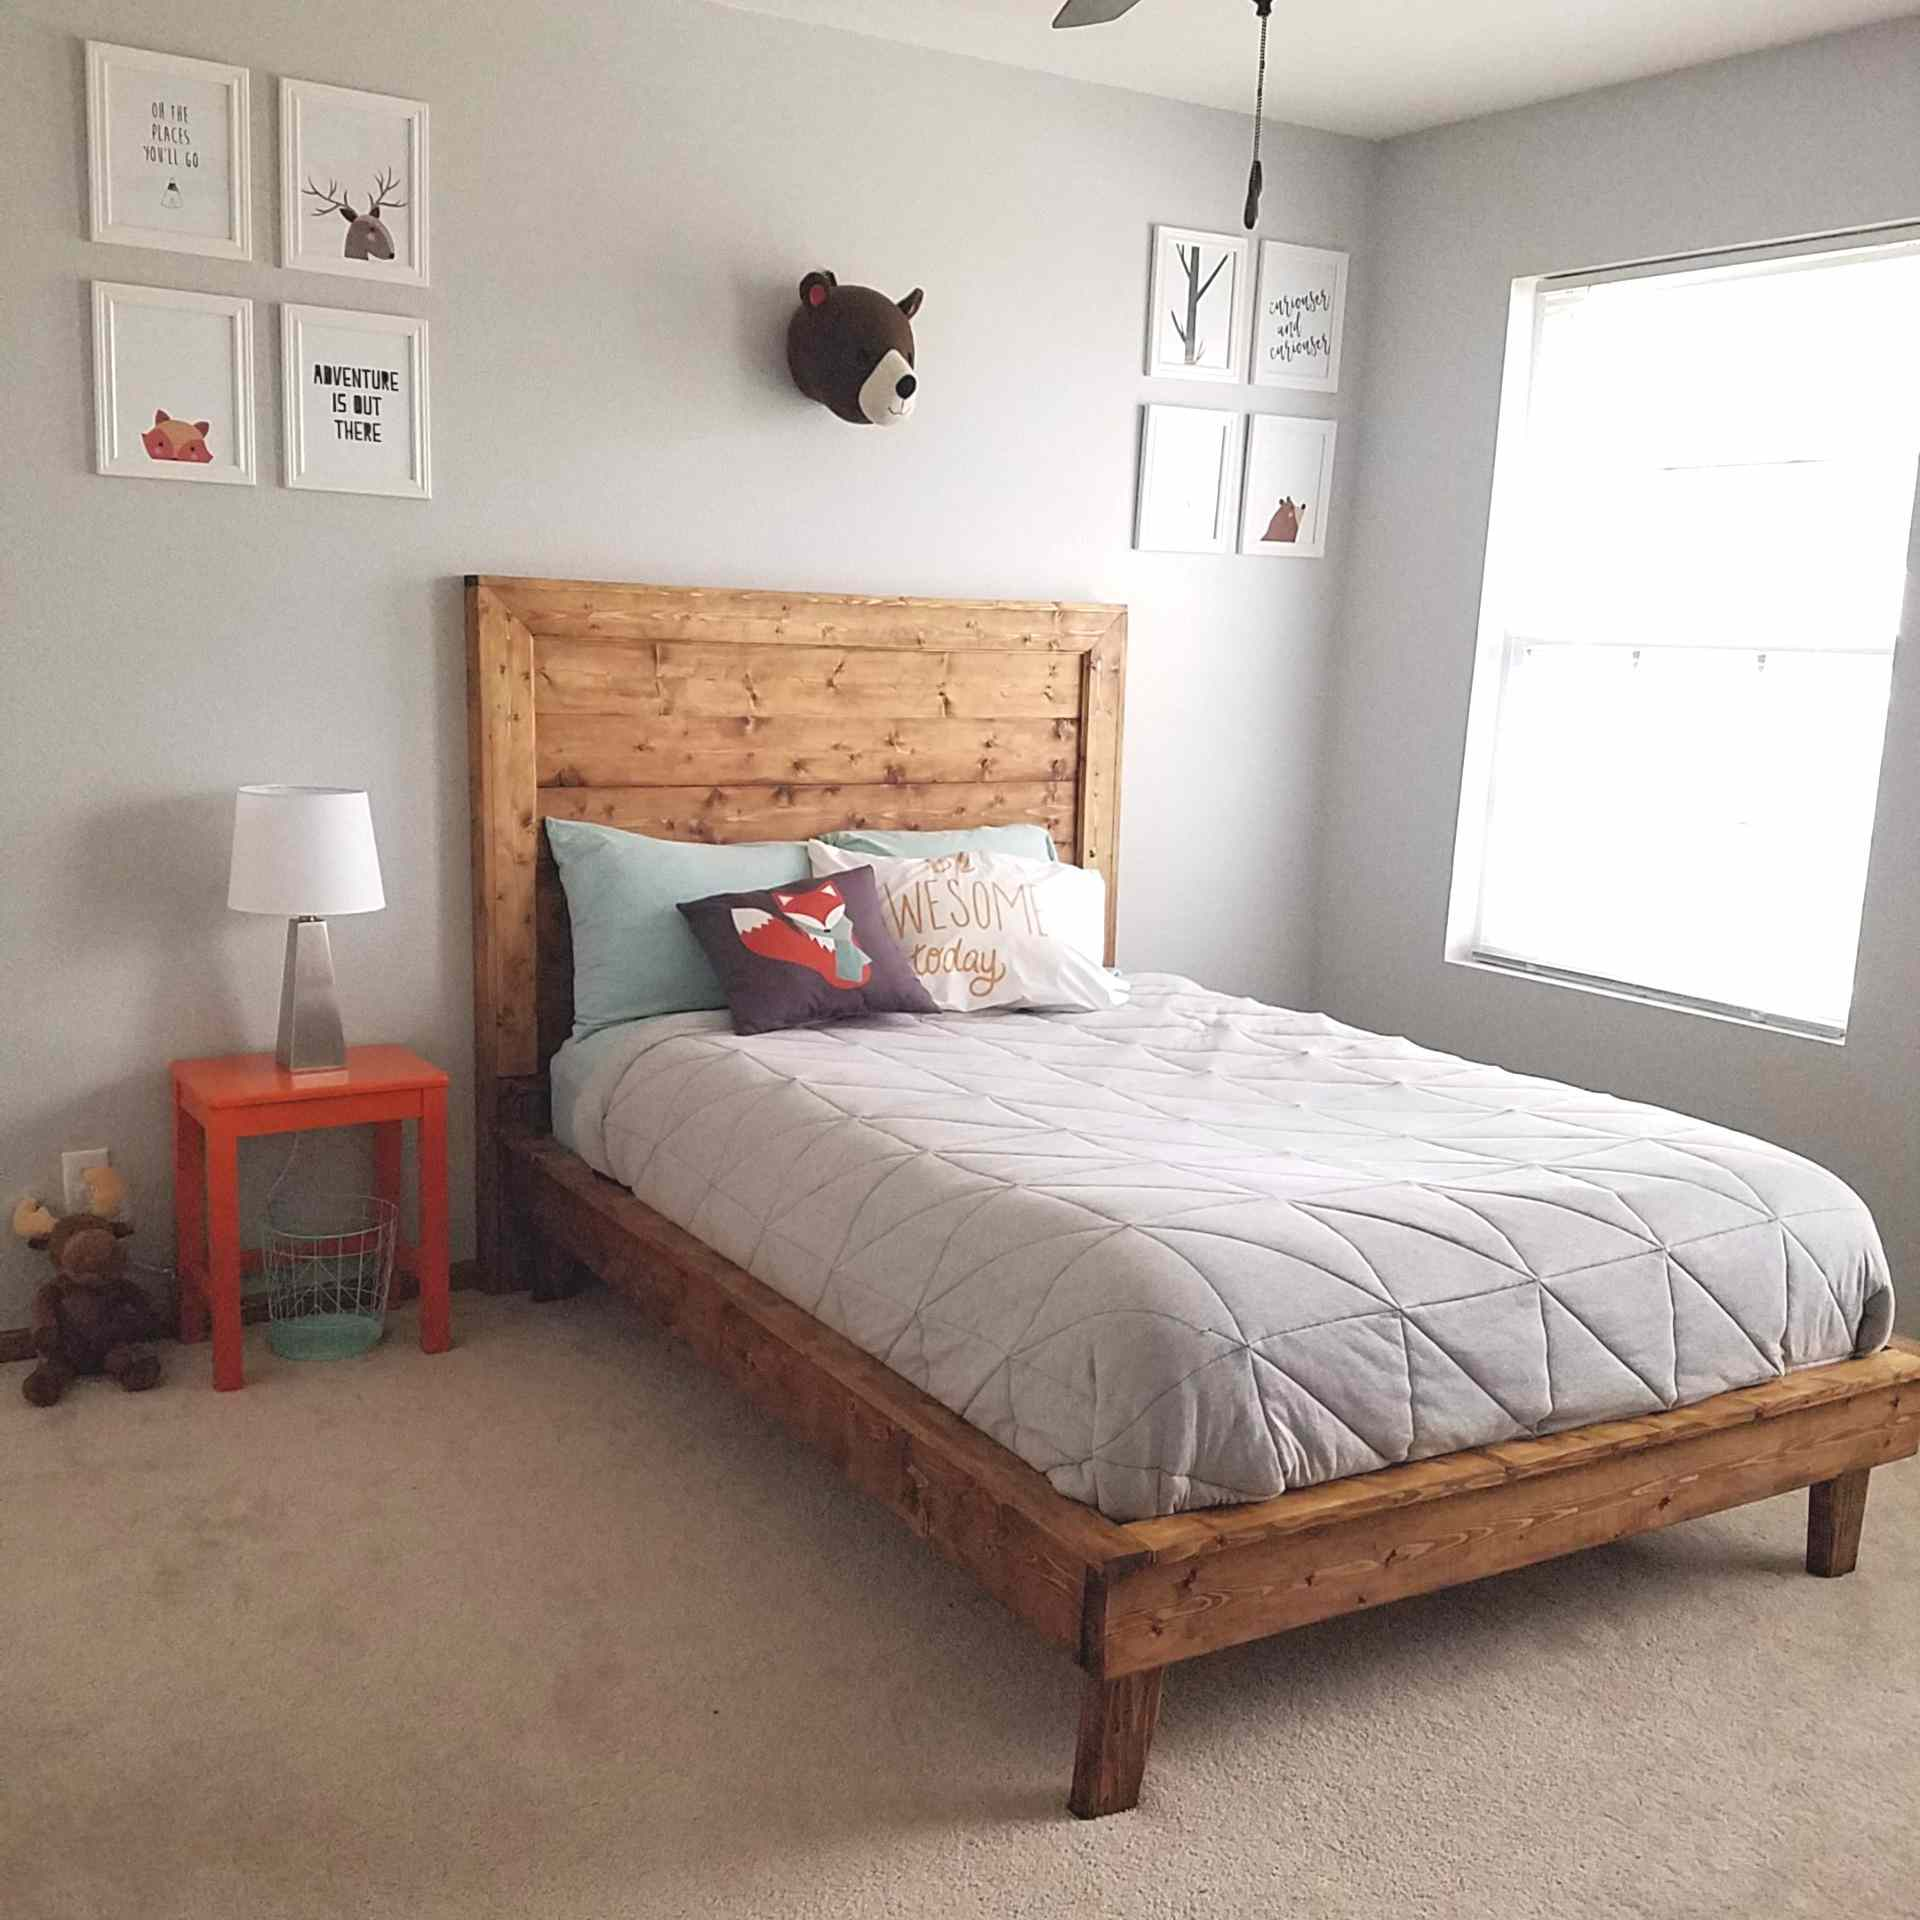 A platform bed in a child's bedroom